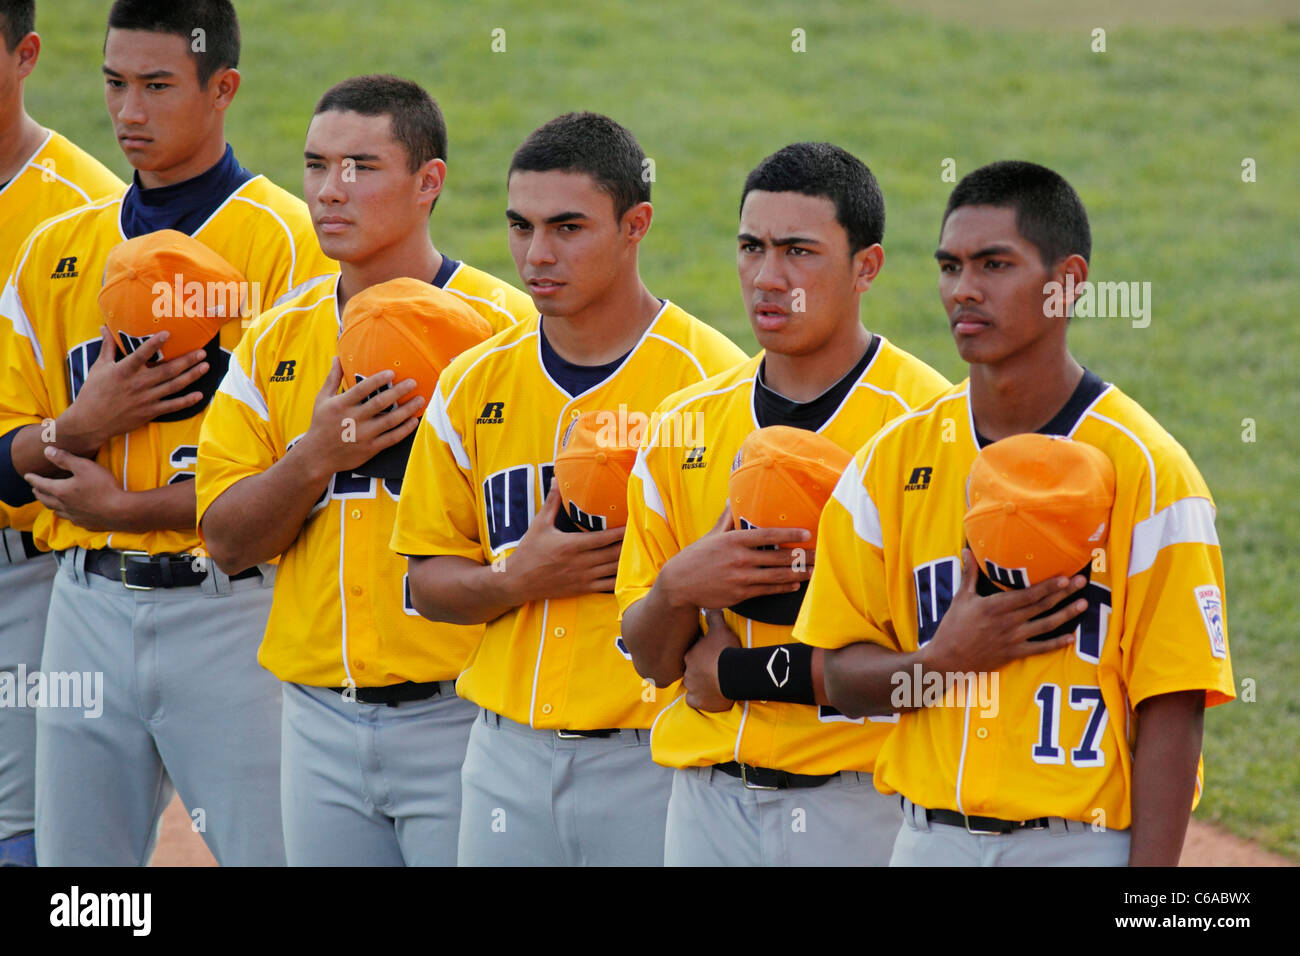 Players from US West (Hilo, Hawaii) during the national anthem at the 2011 Senior League Baseball World Series. - Stock Image